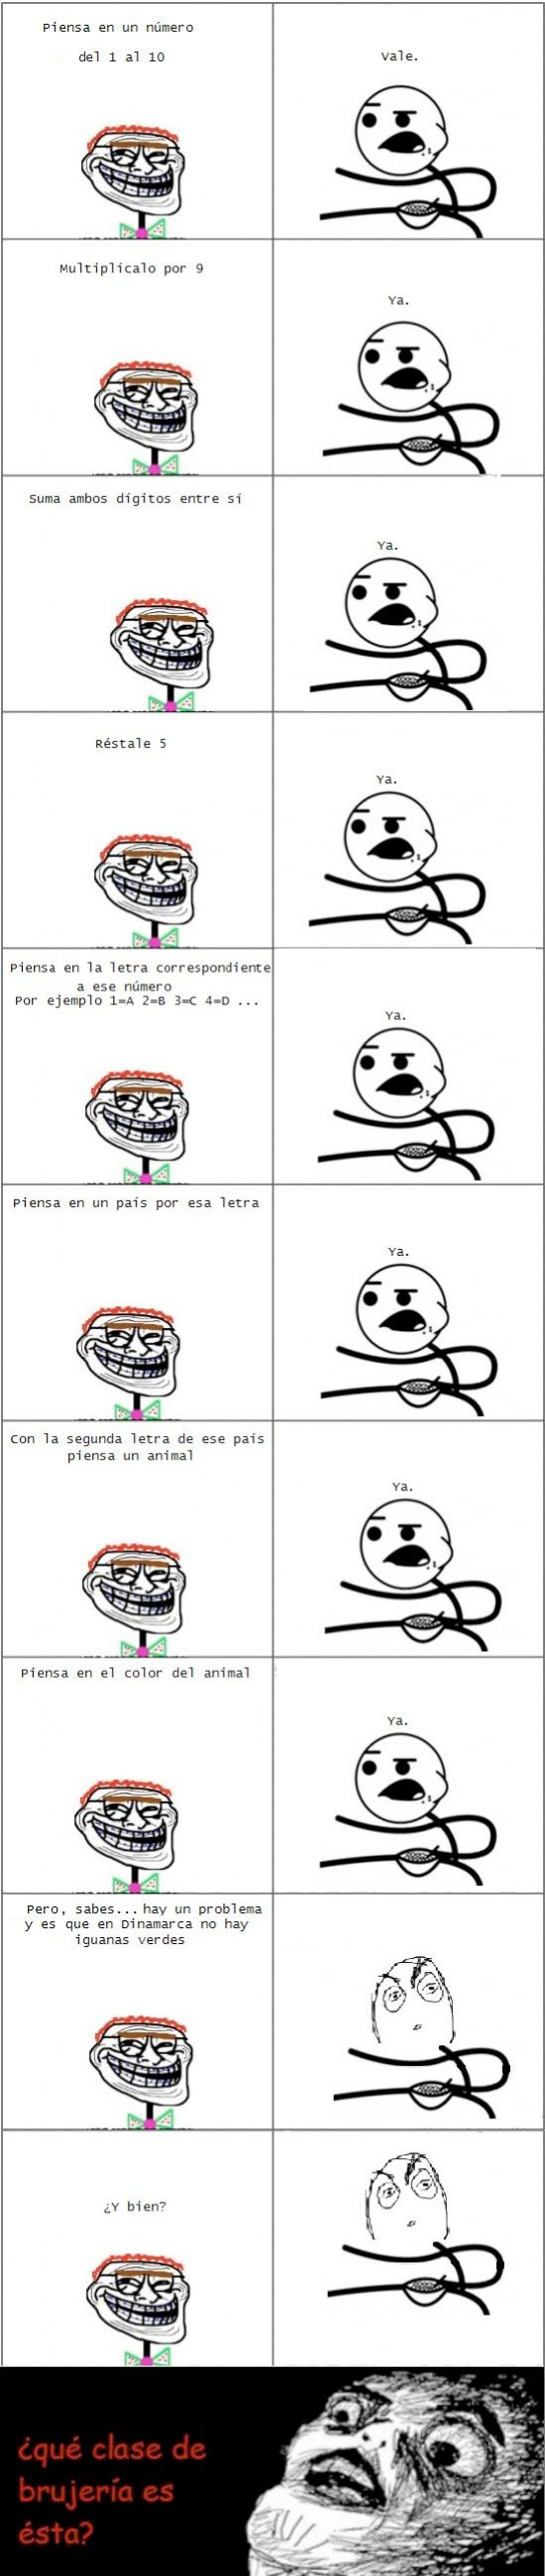 cereal guy,juego,mates,Troll